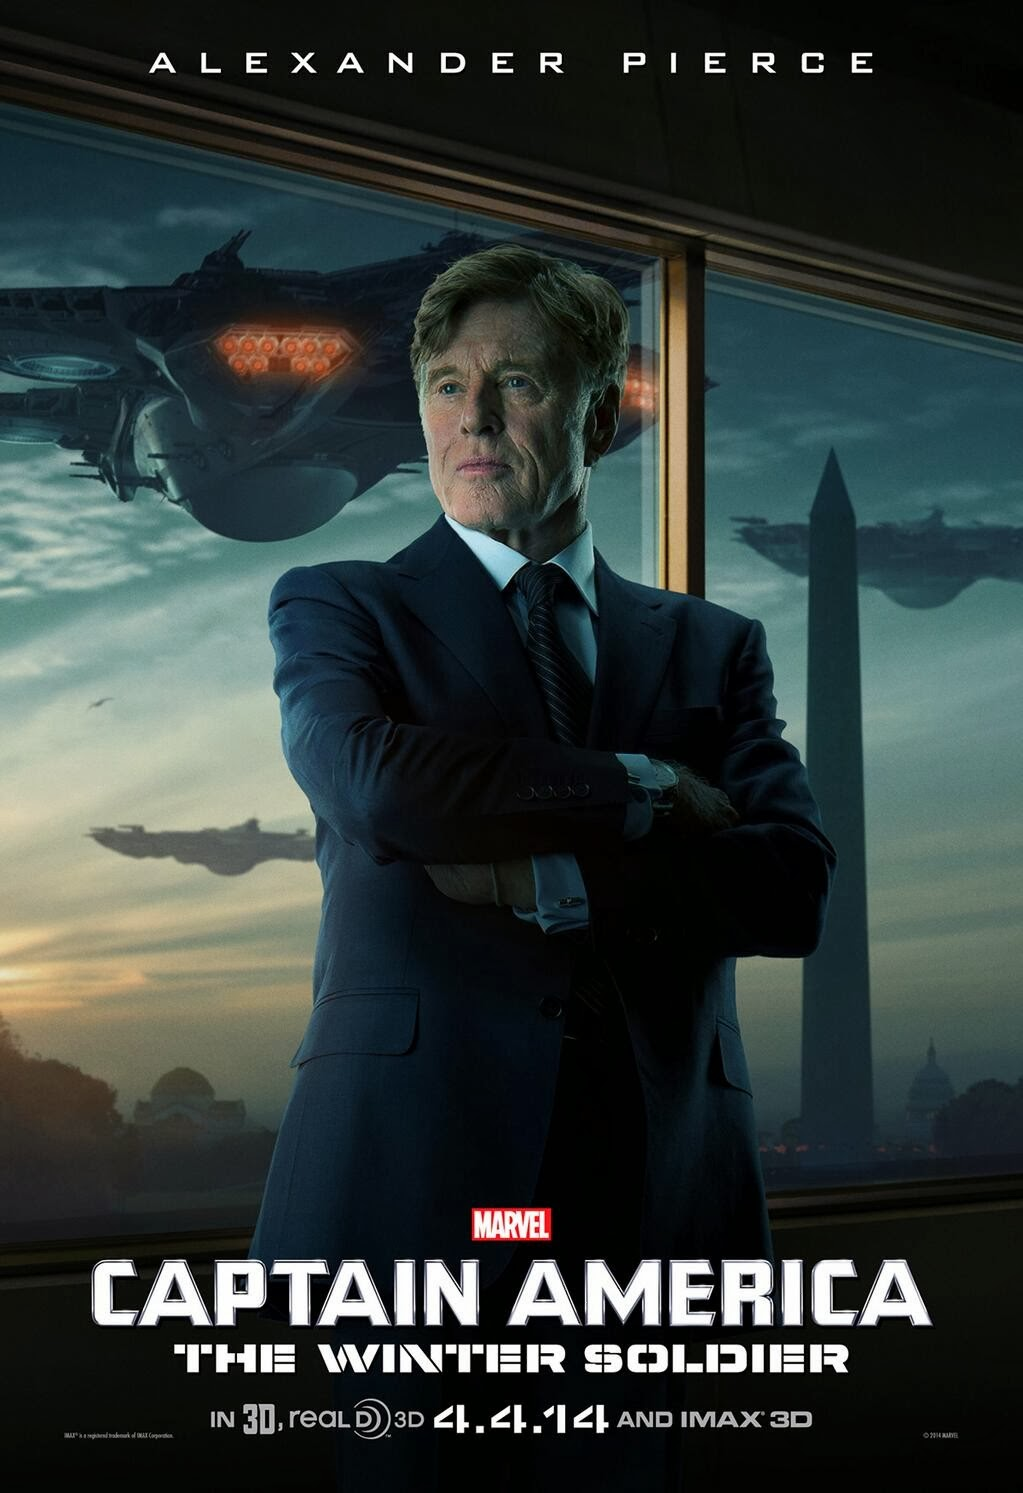 Captain America The Winter Soldier Teaser Character Movie Poster - Robert Redford as Alexander Pierce